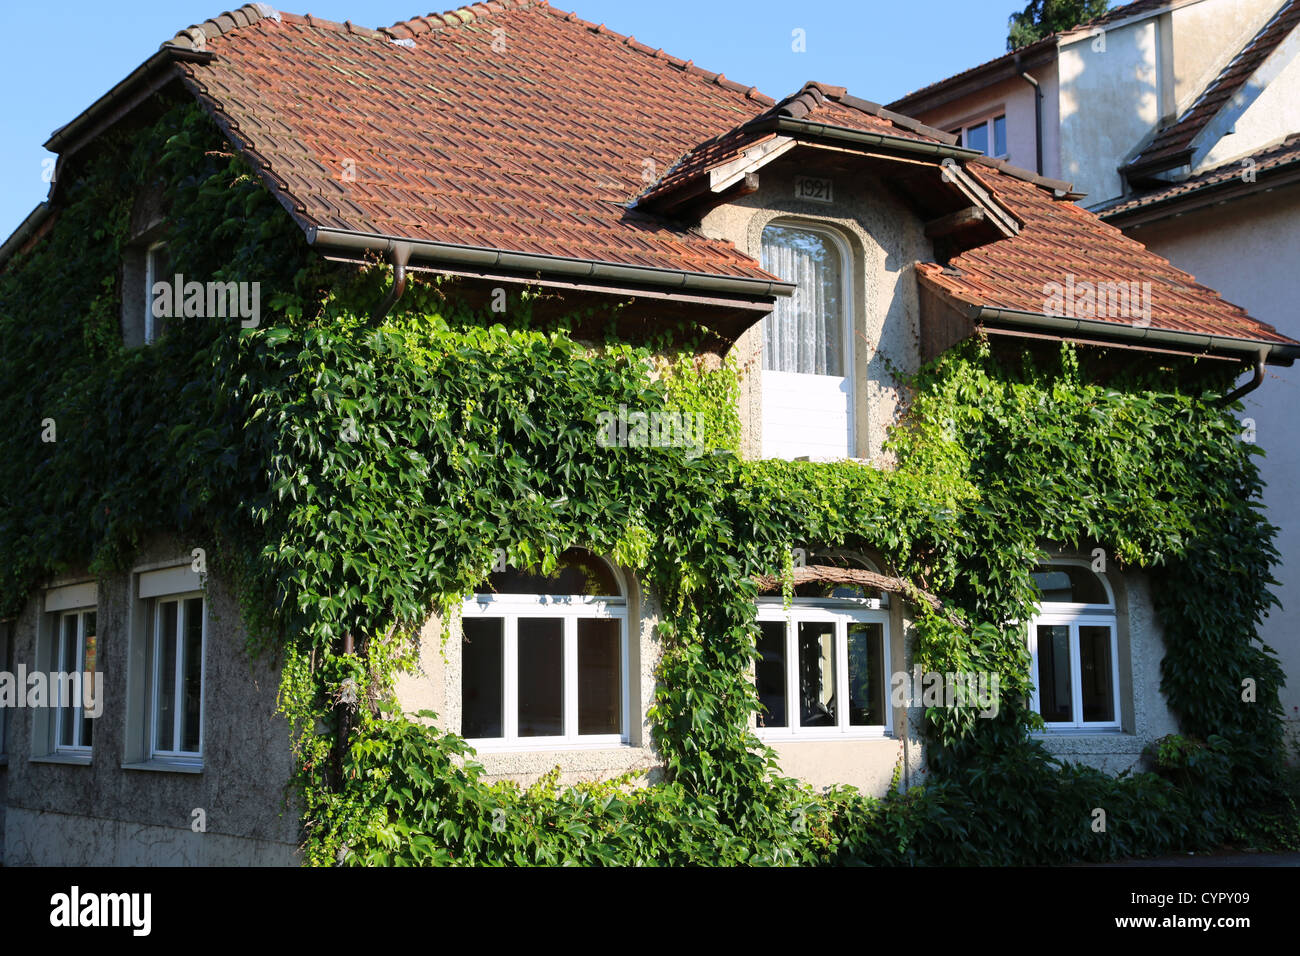 House covered in green ivy in Switzerland Stock Photo